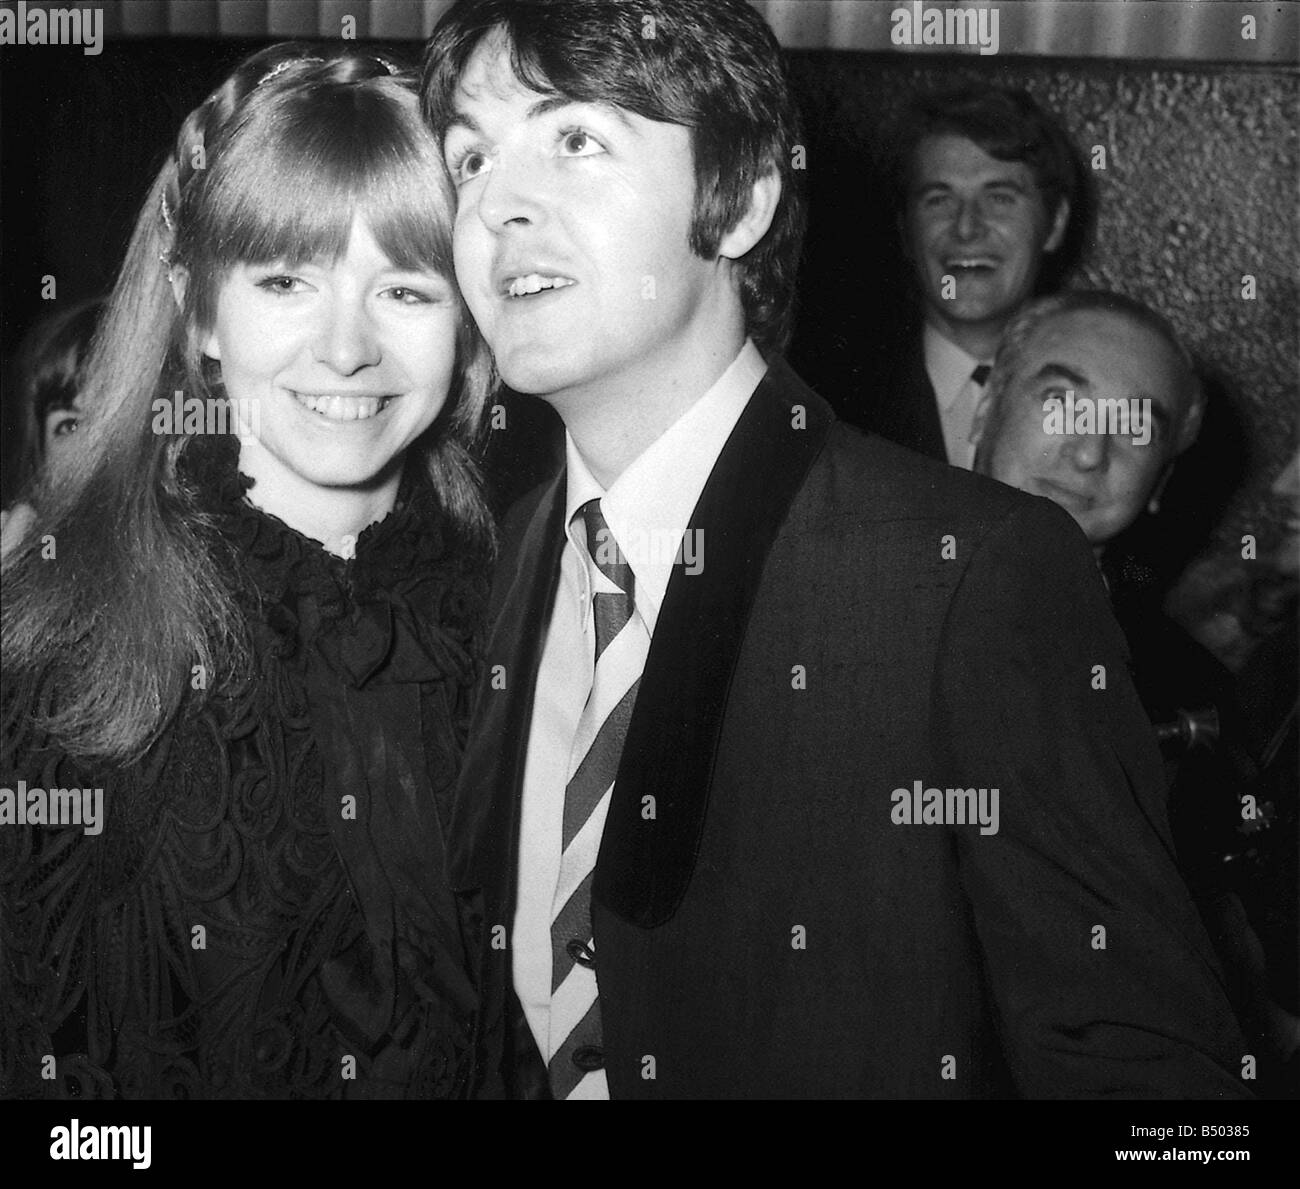 Beatles Files 1968 Paul McCartney With Jane Asher At London Pavillion For The Premiere Of Here We Go Round Mulberry Bush 04 01 68